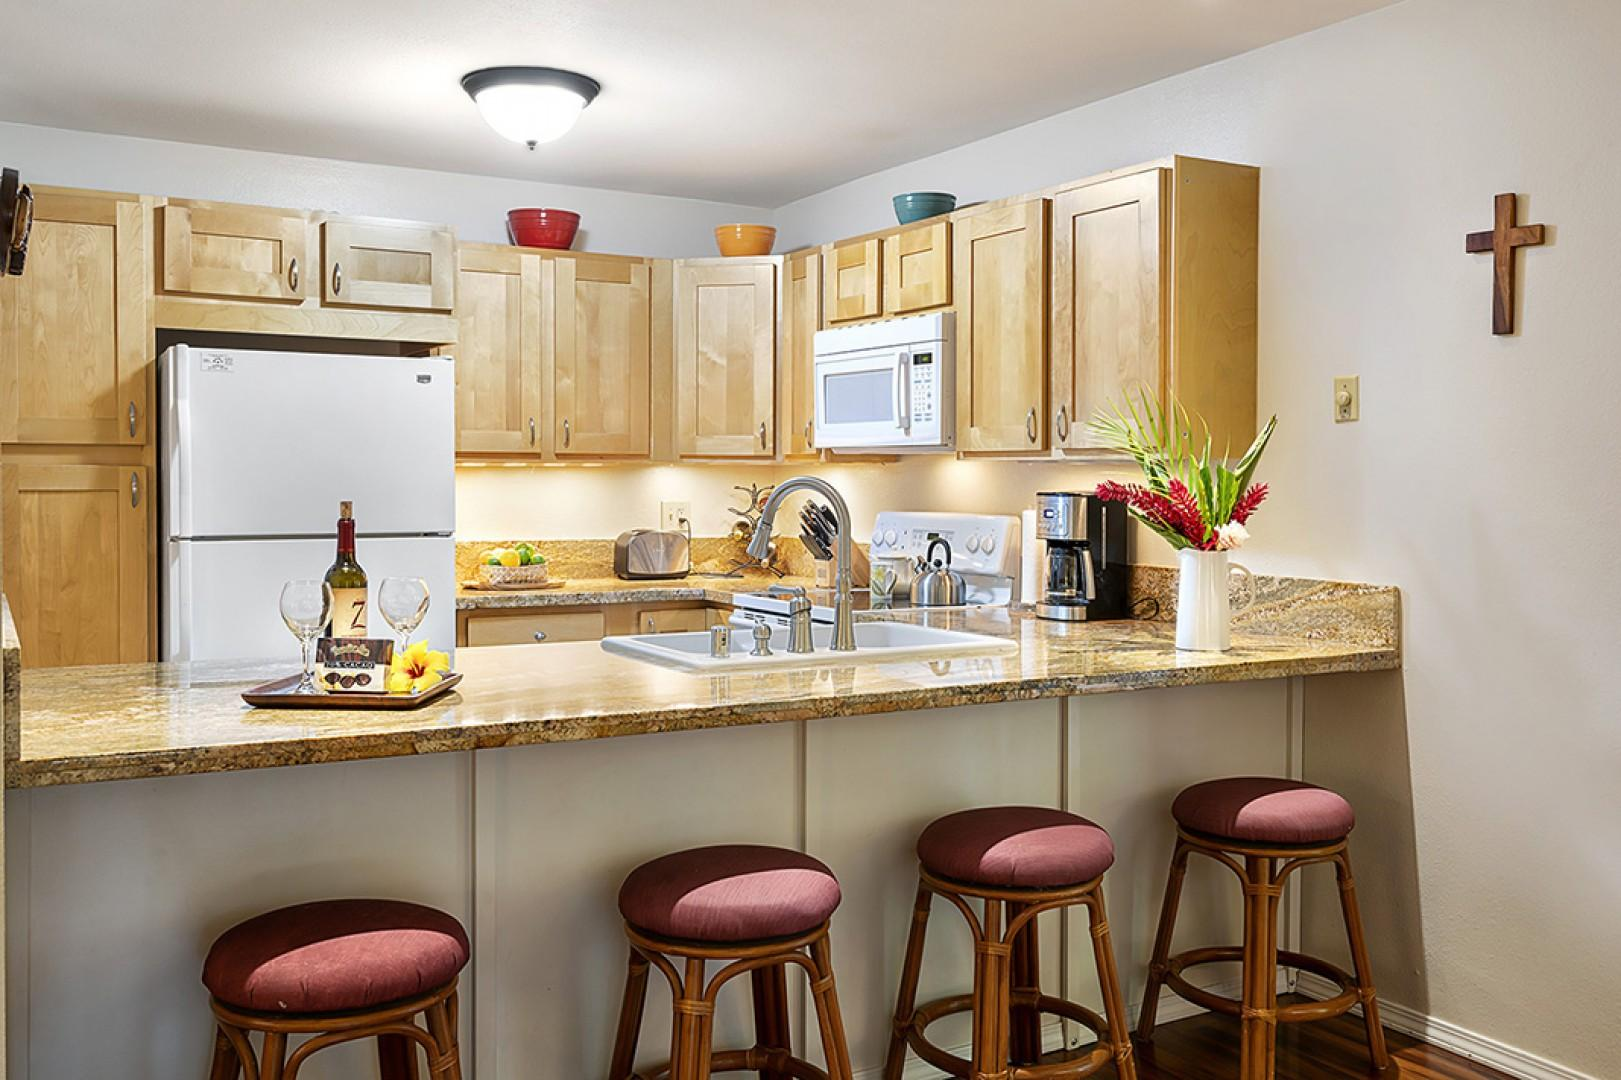 Upgraded kitchen with breakfast bar